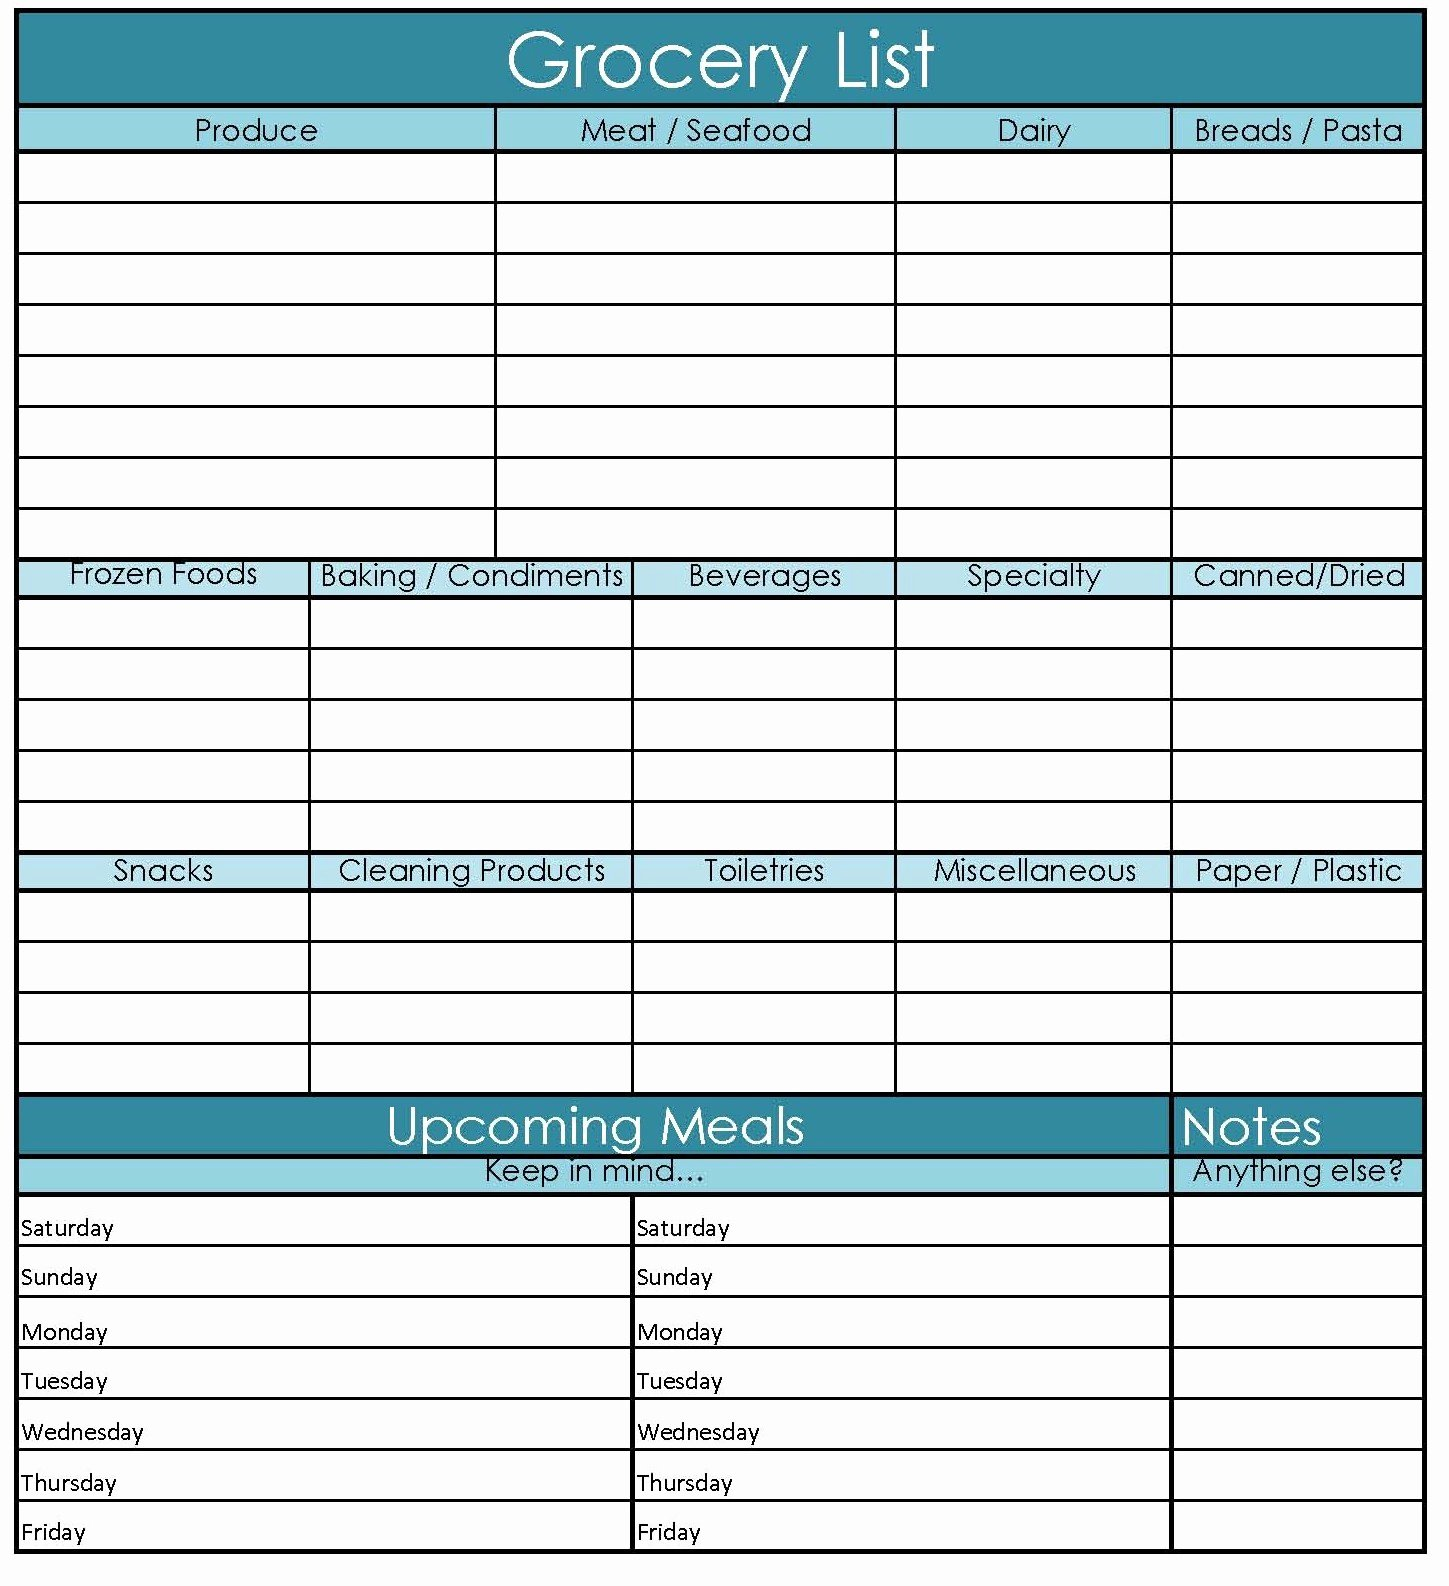 Shopping List Template Excel New Grocery List Sample